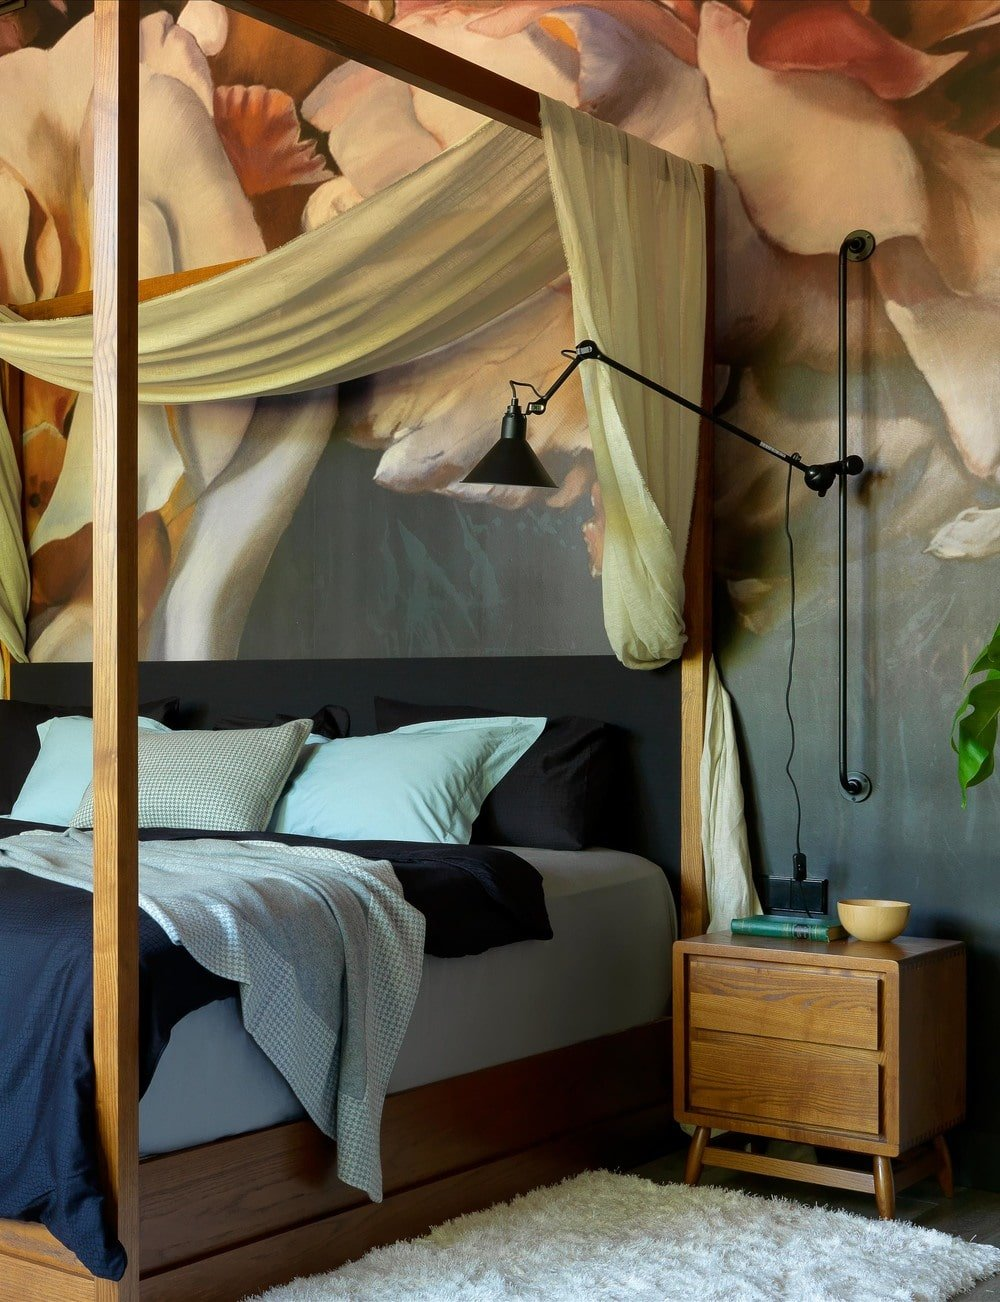 This bed is flanked by charming wooden bedside drawers that match perfectly with the tone of the bed frame. Here you can also see that the bed has a black headboard that blends well with the mural behind it.